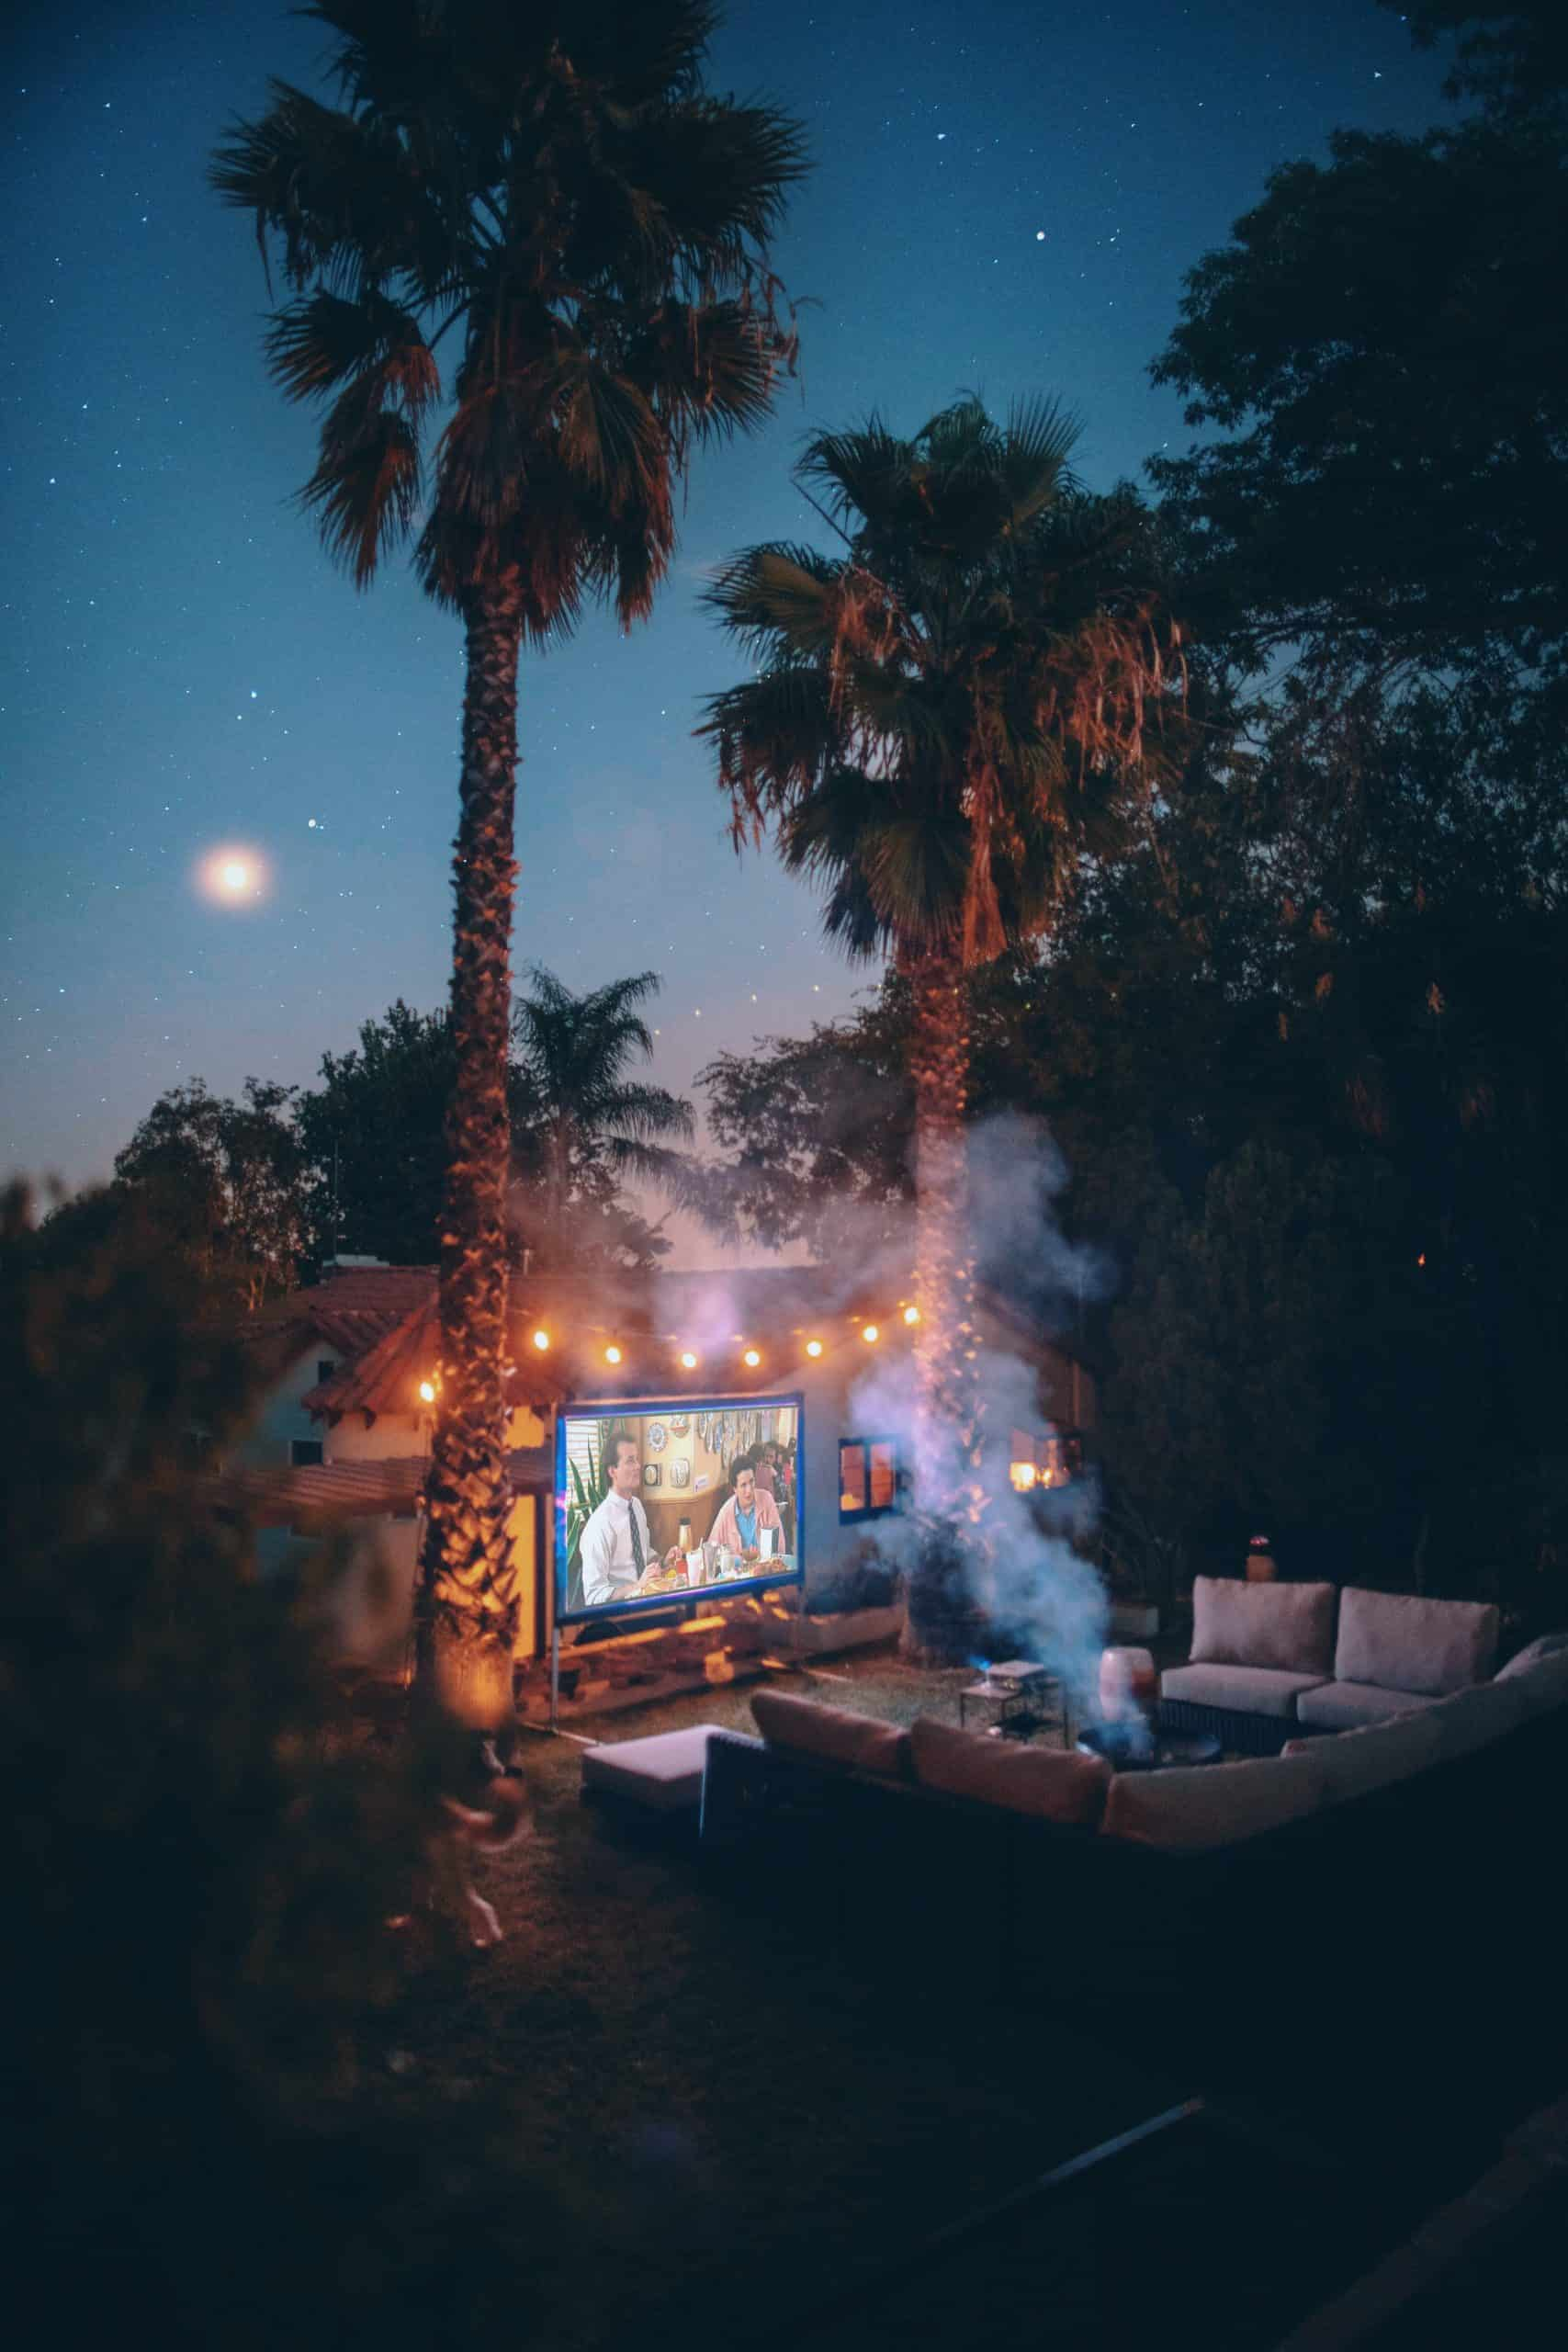 back yard hangout sofa circle with a screen projector and a movie